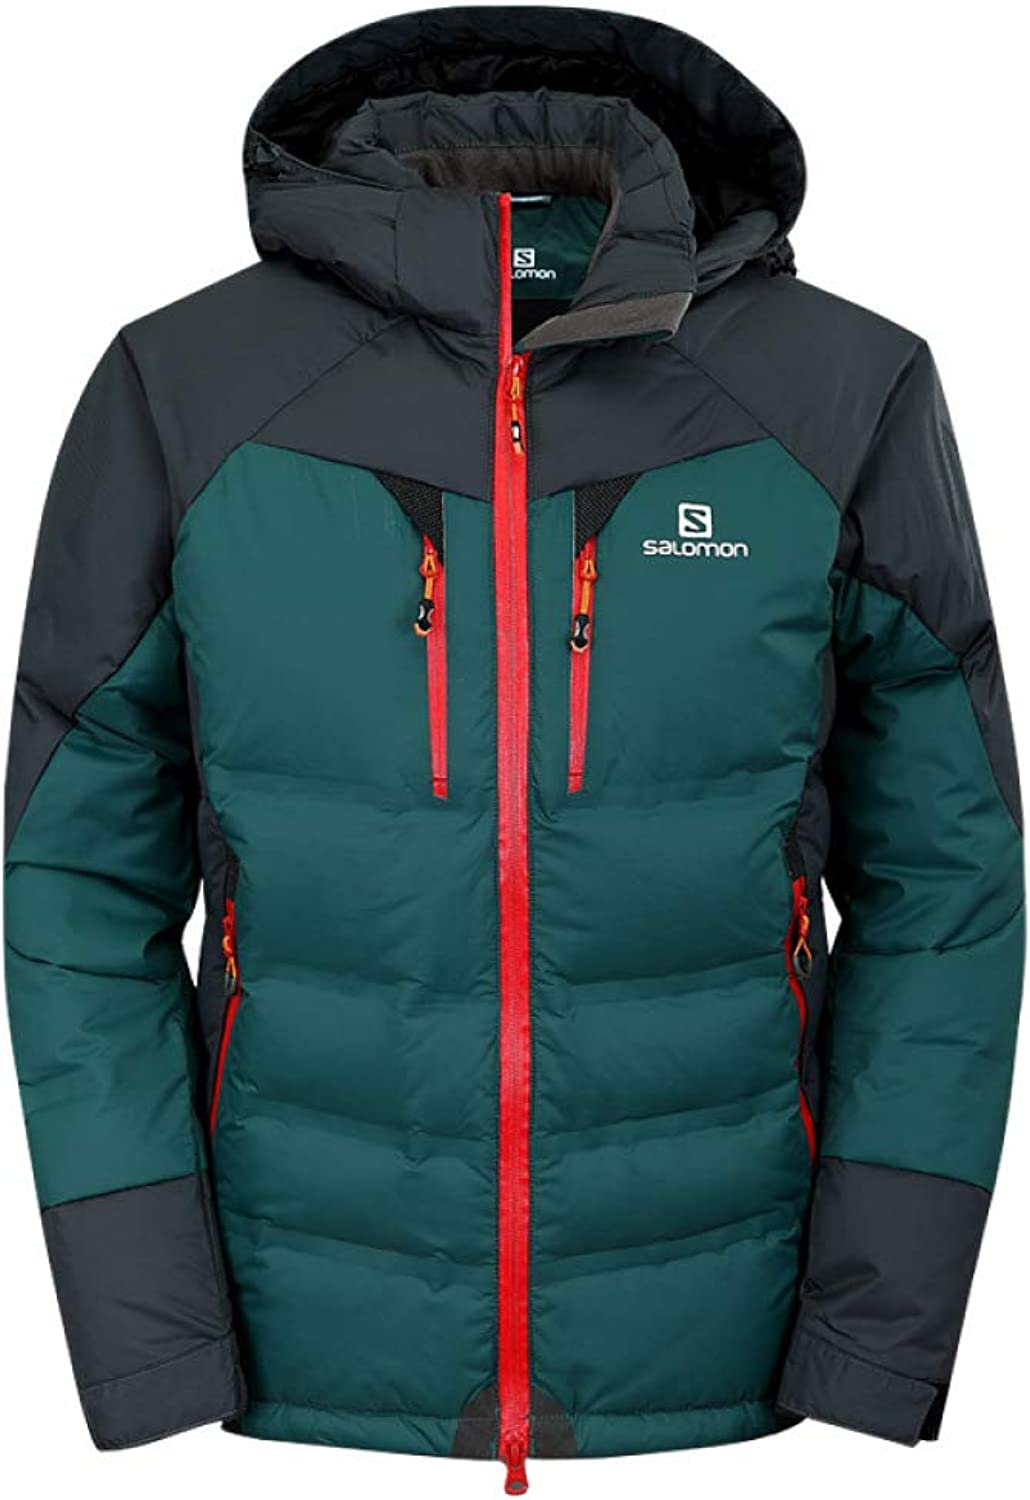 YXLONG Winter Thickening Outdoor Down Jacket Male